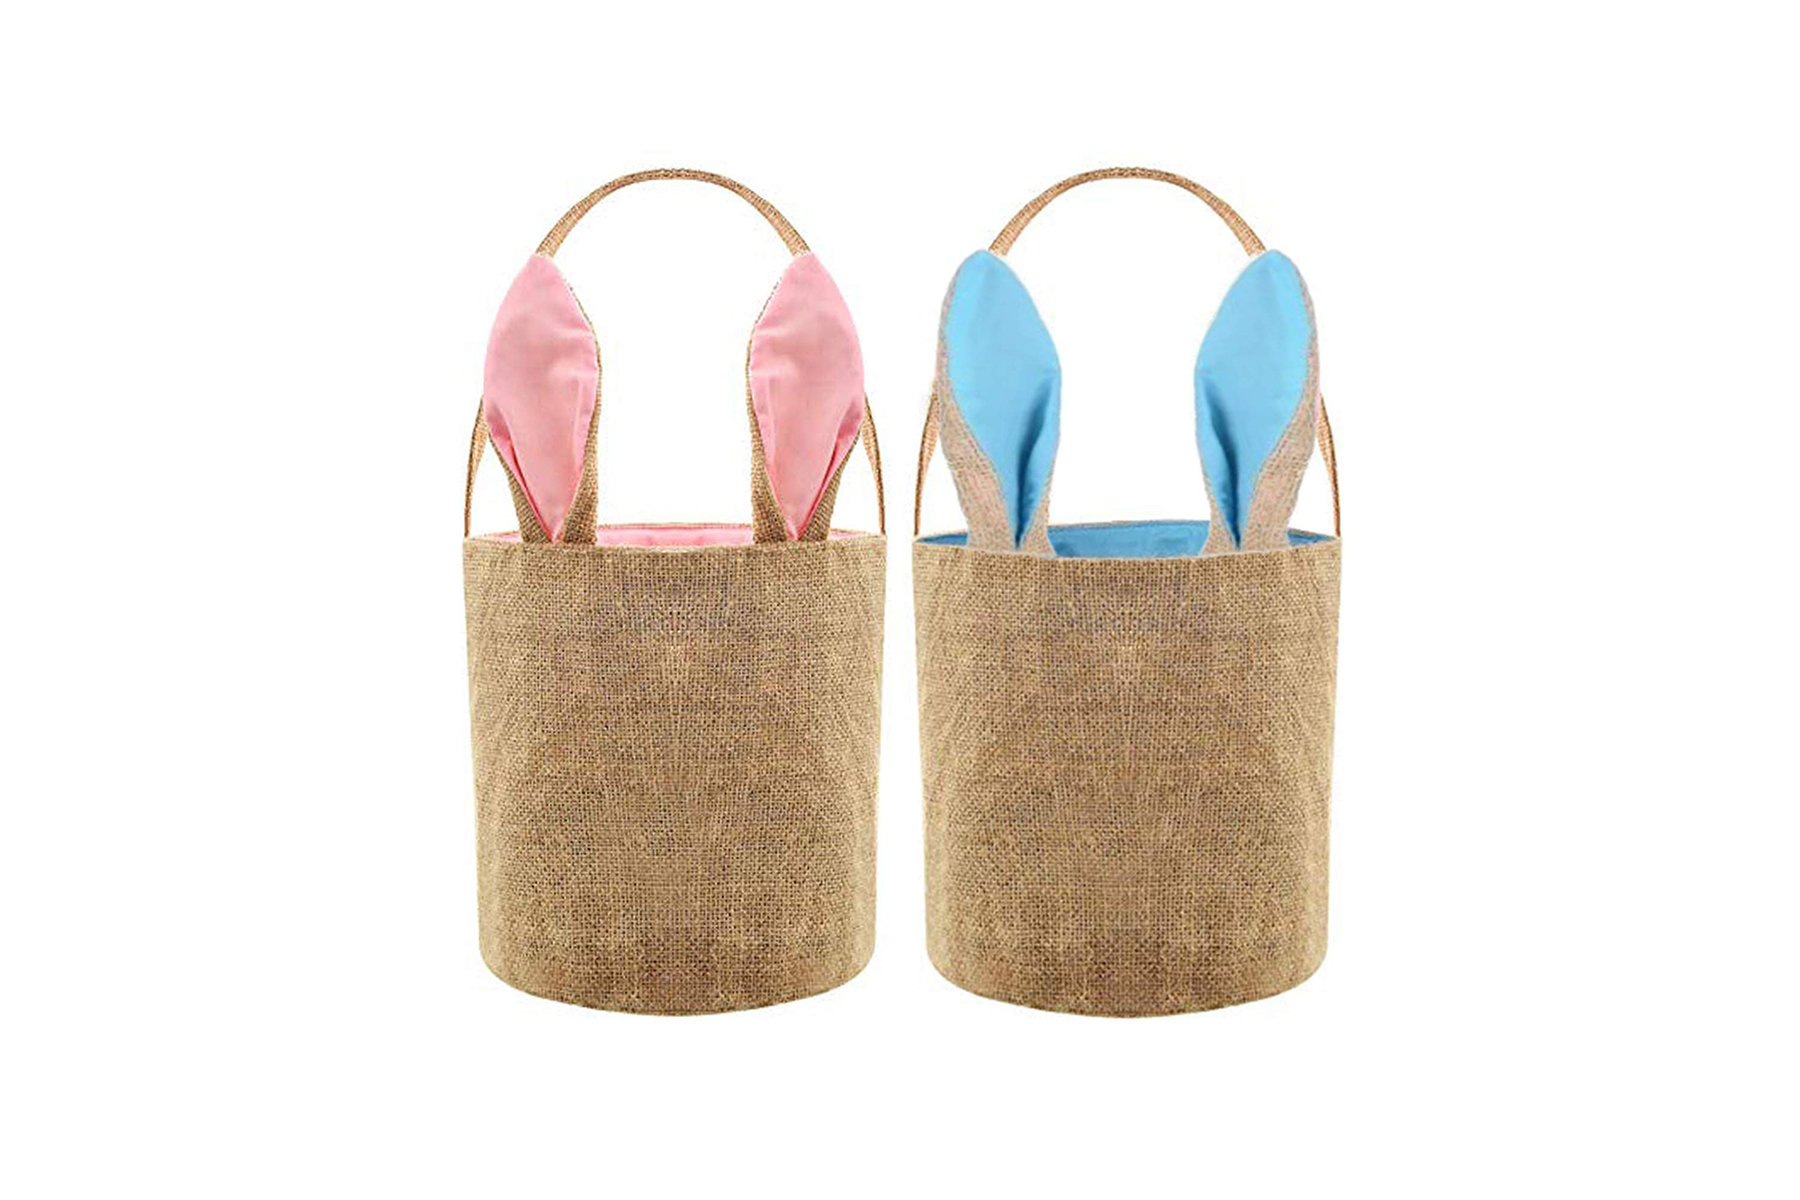 Burlap Bunny Bags Amazon